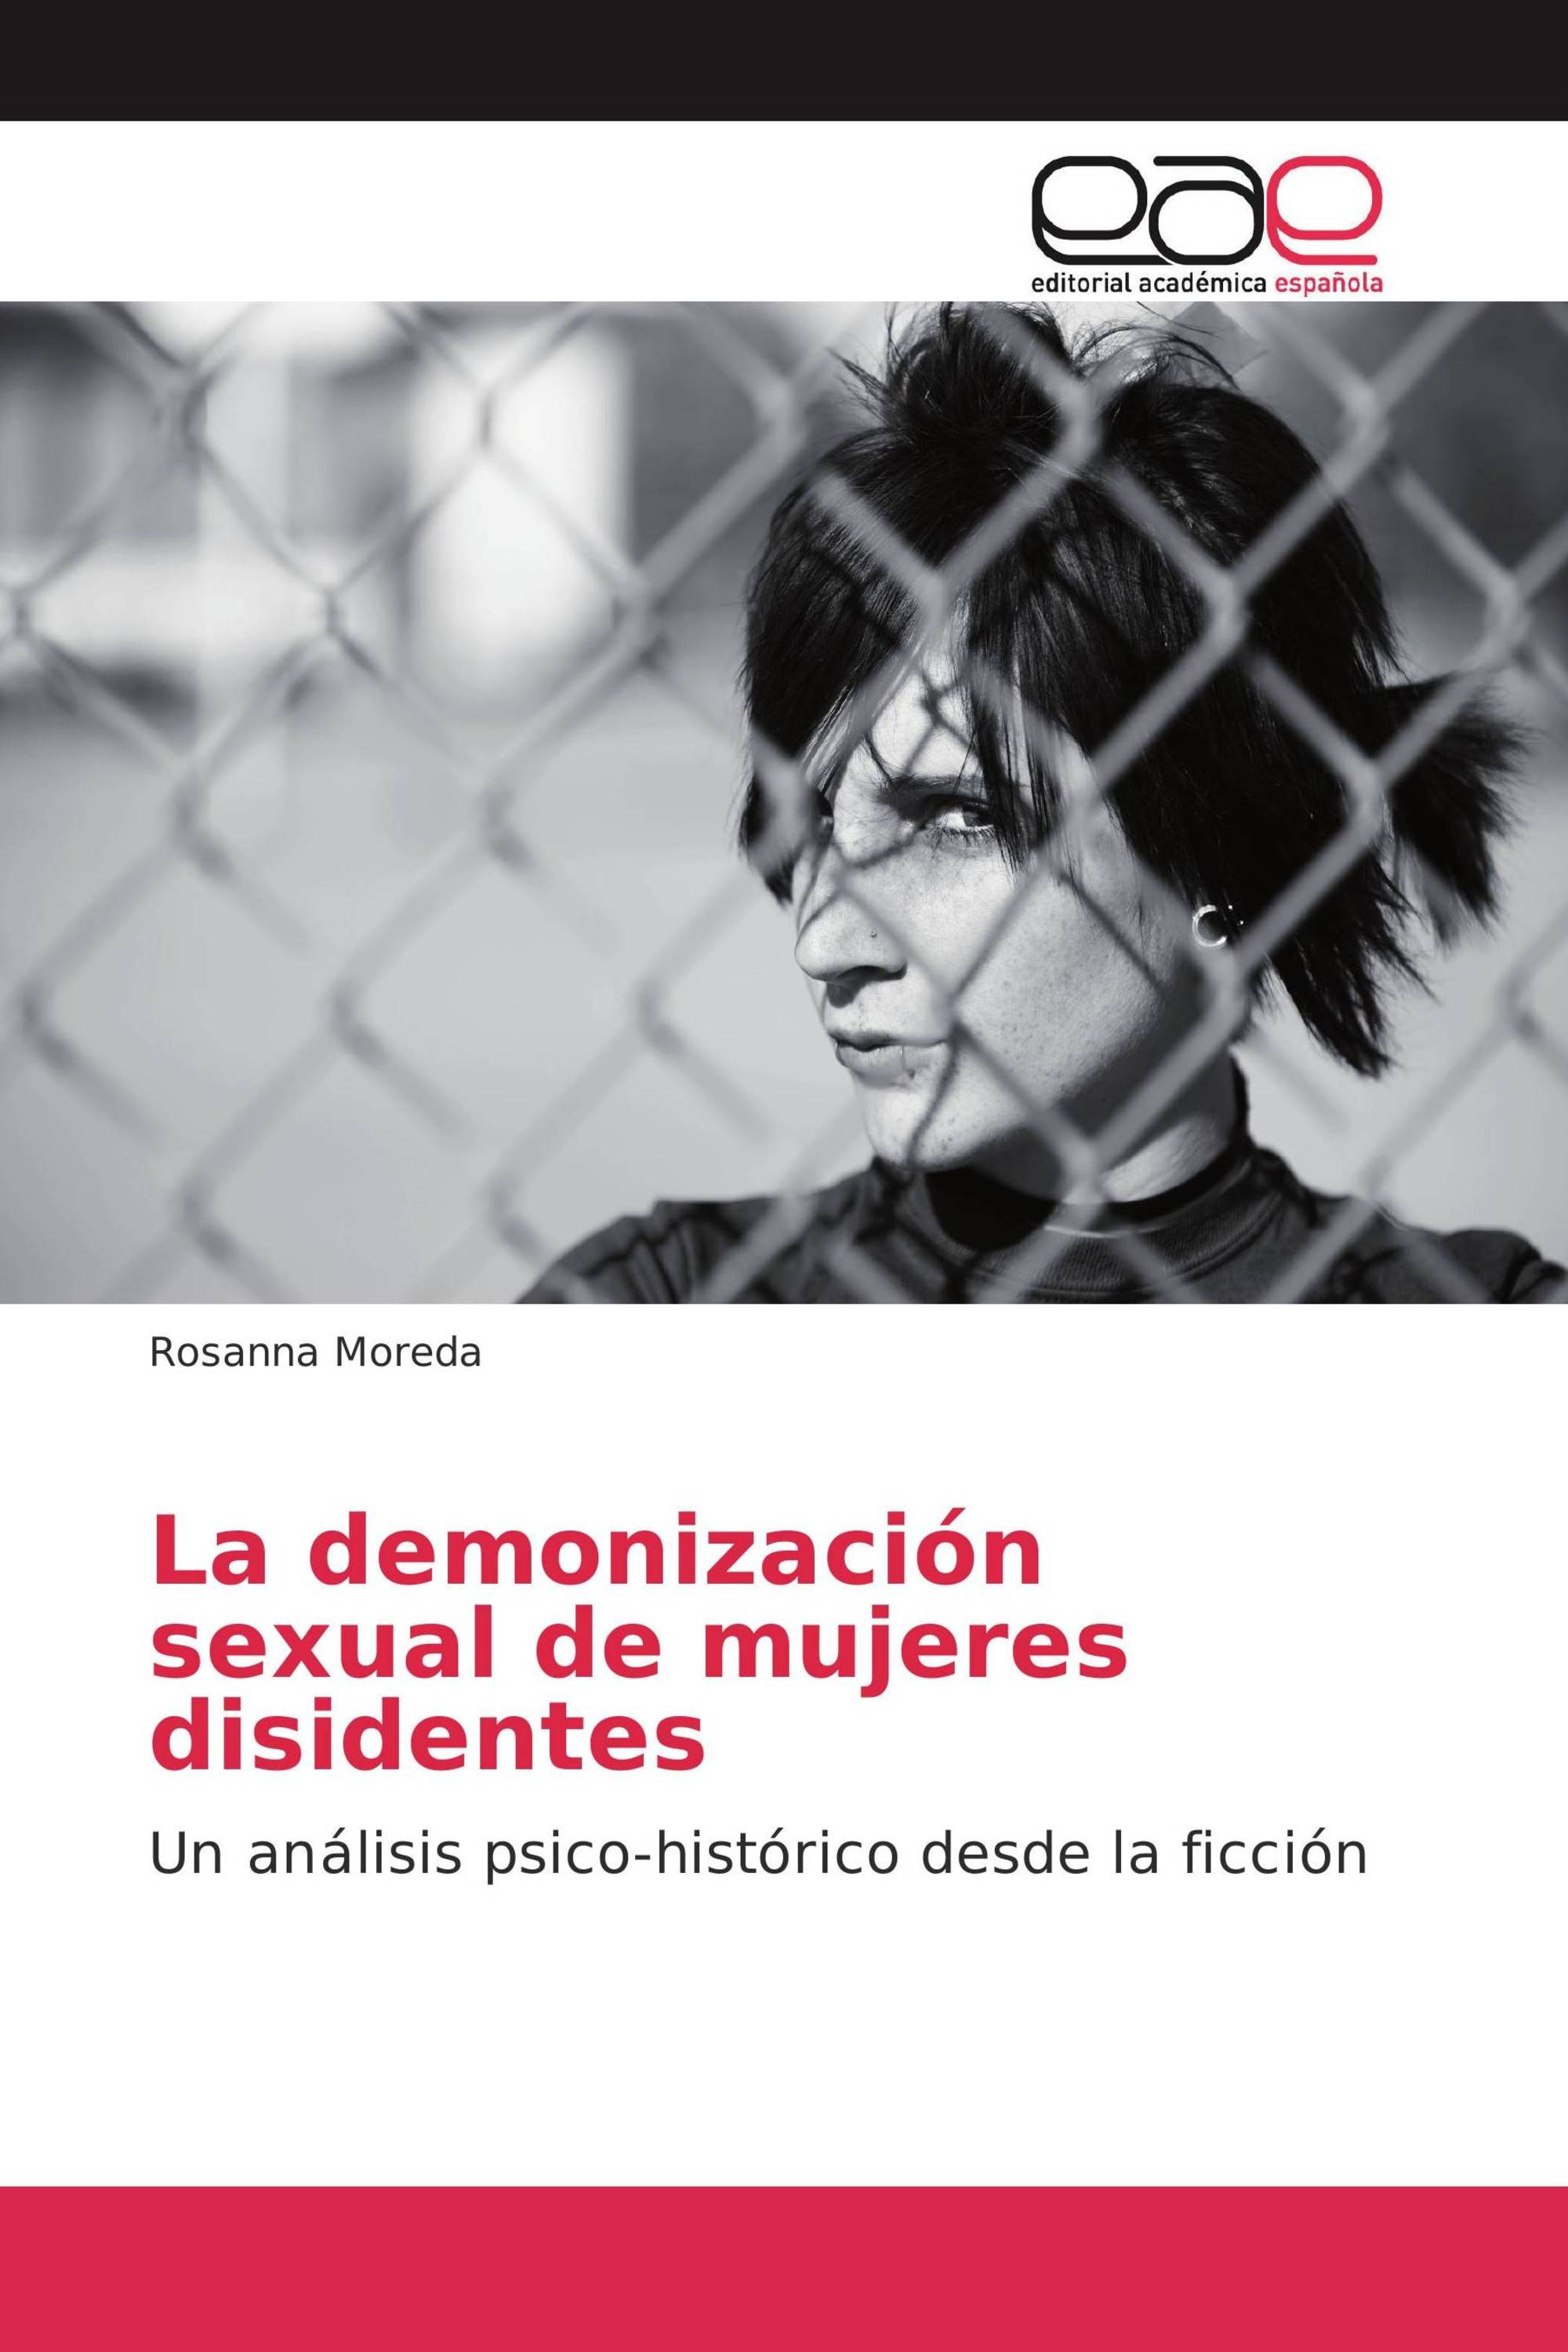 La demonización sexual de mujeres disidentes